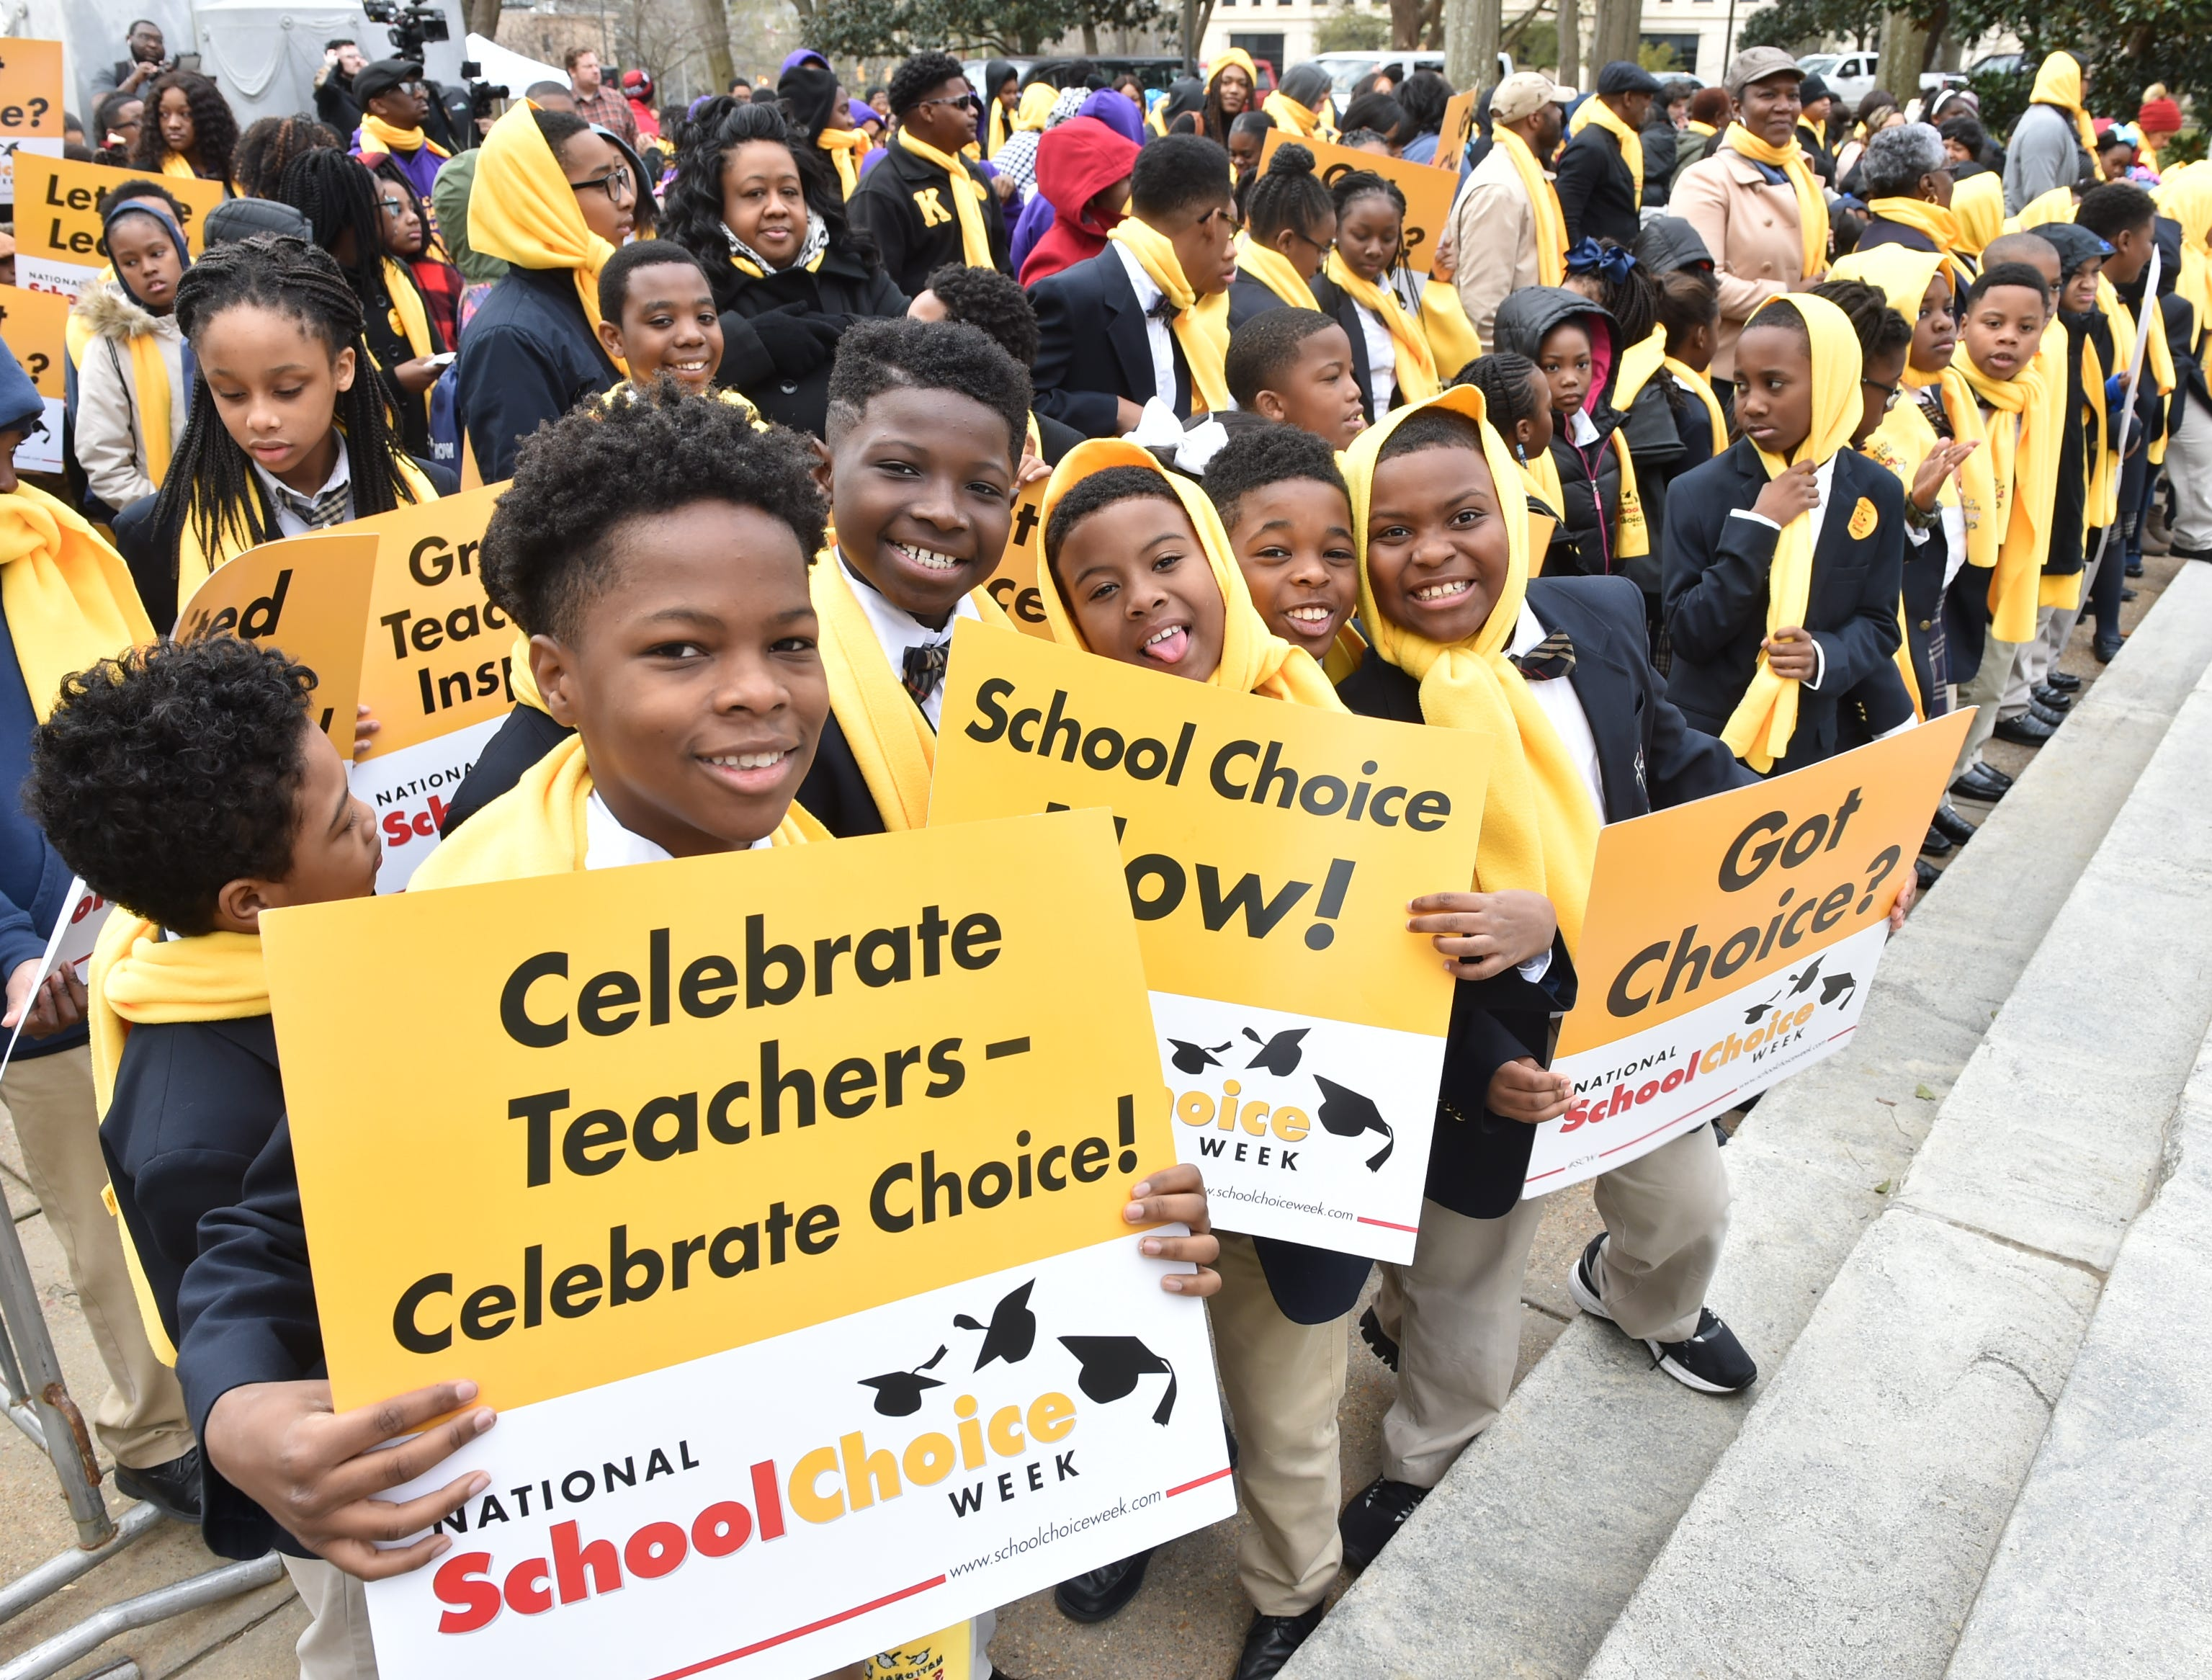 National School Choice Week rally on the steps of the capitol building in Jackson, MS. Students from across the state attended the rally and met with legislators regarding school choice in Mississippi. Tuesday, Jan. 22, 2019.